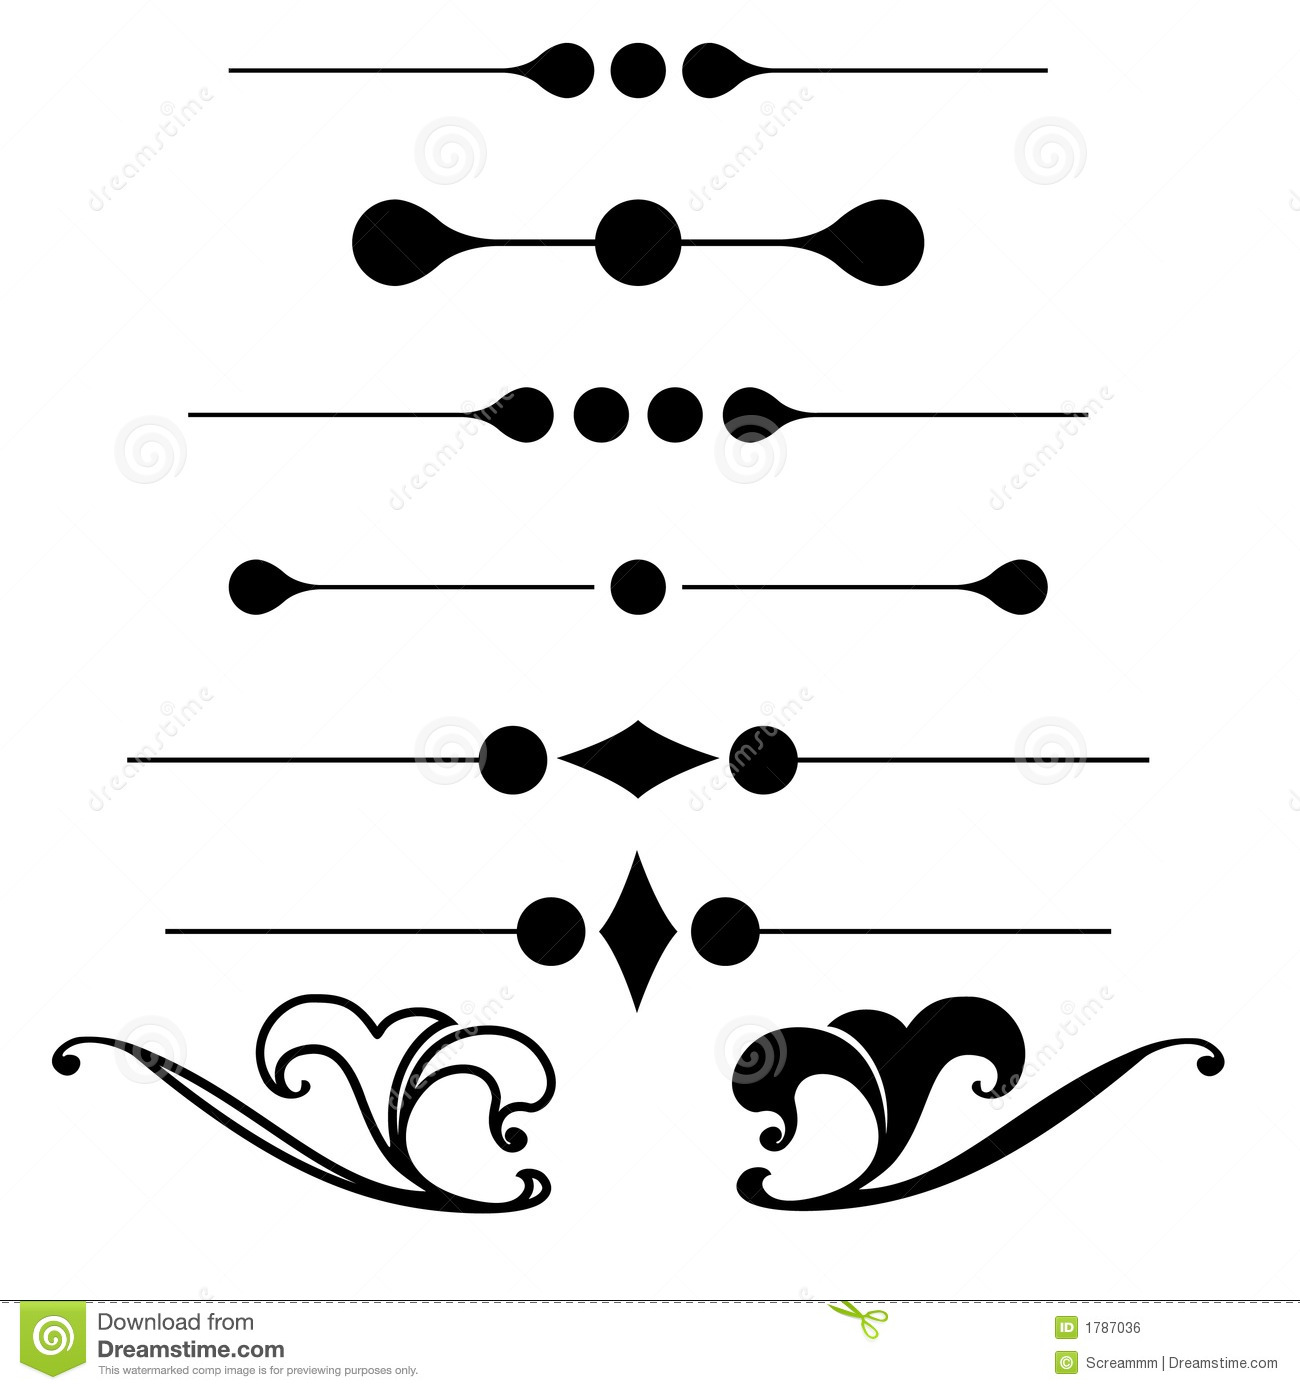 Decorative ornament shapes stock vector. Image of stylish ...